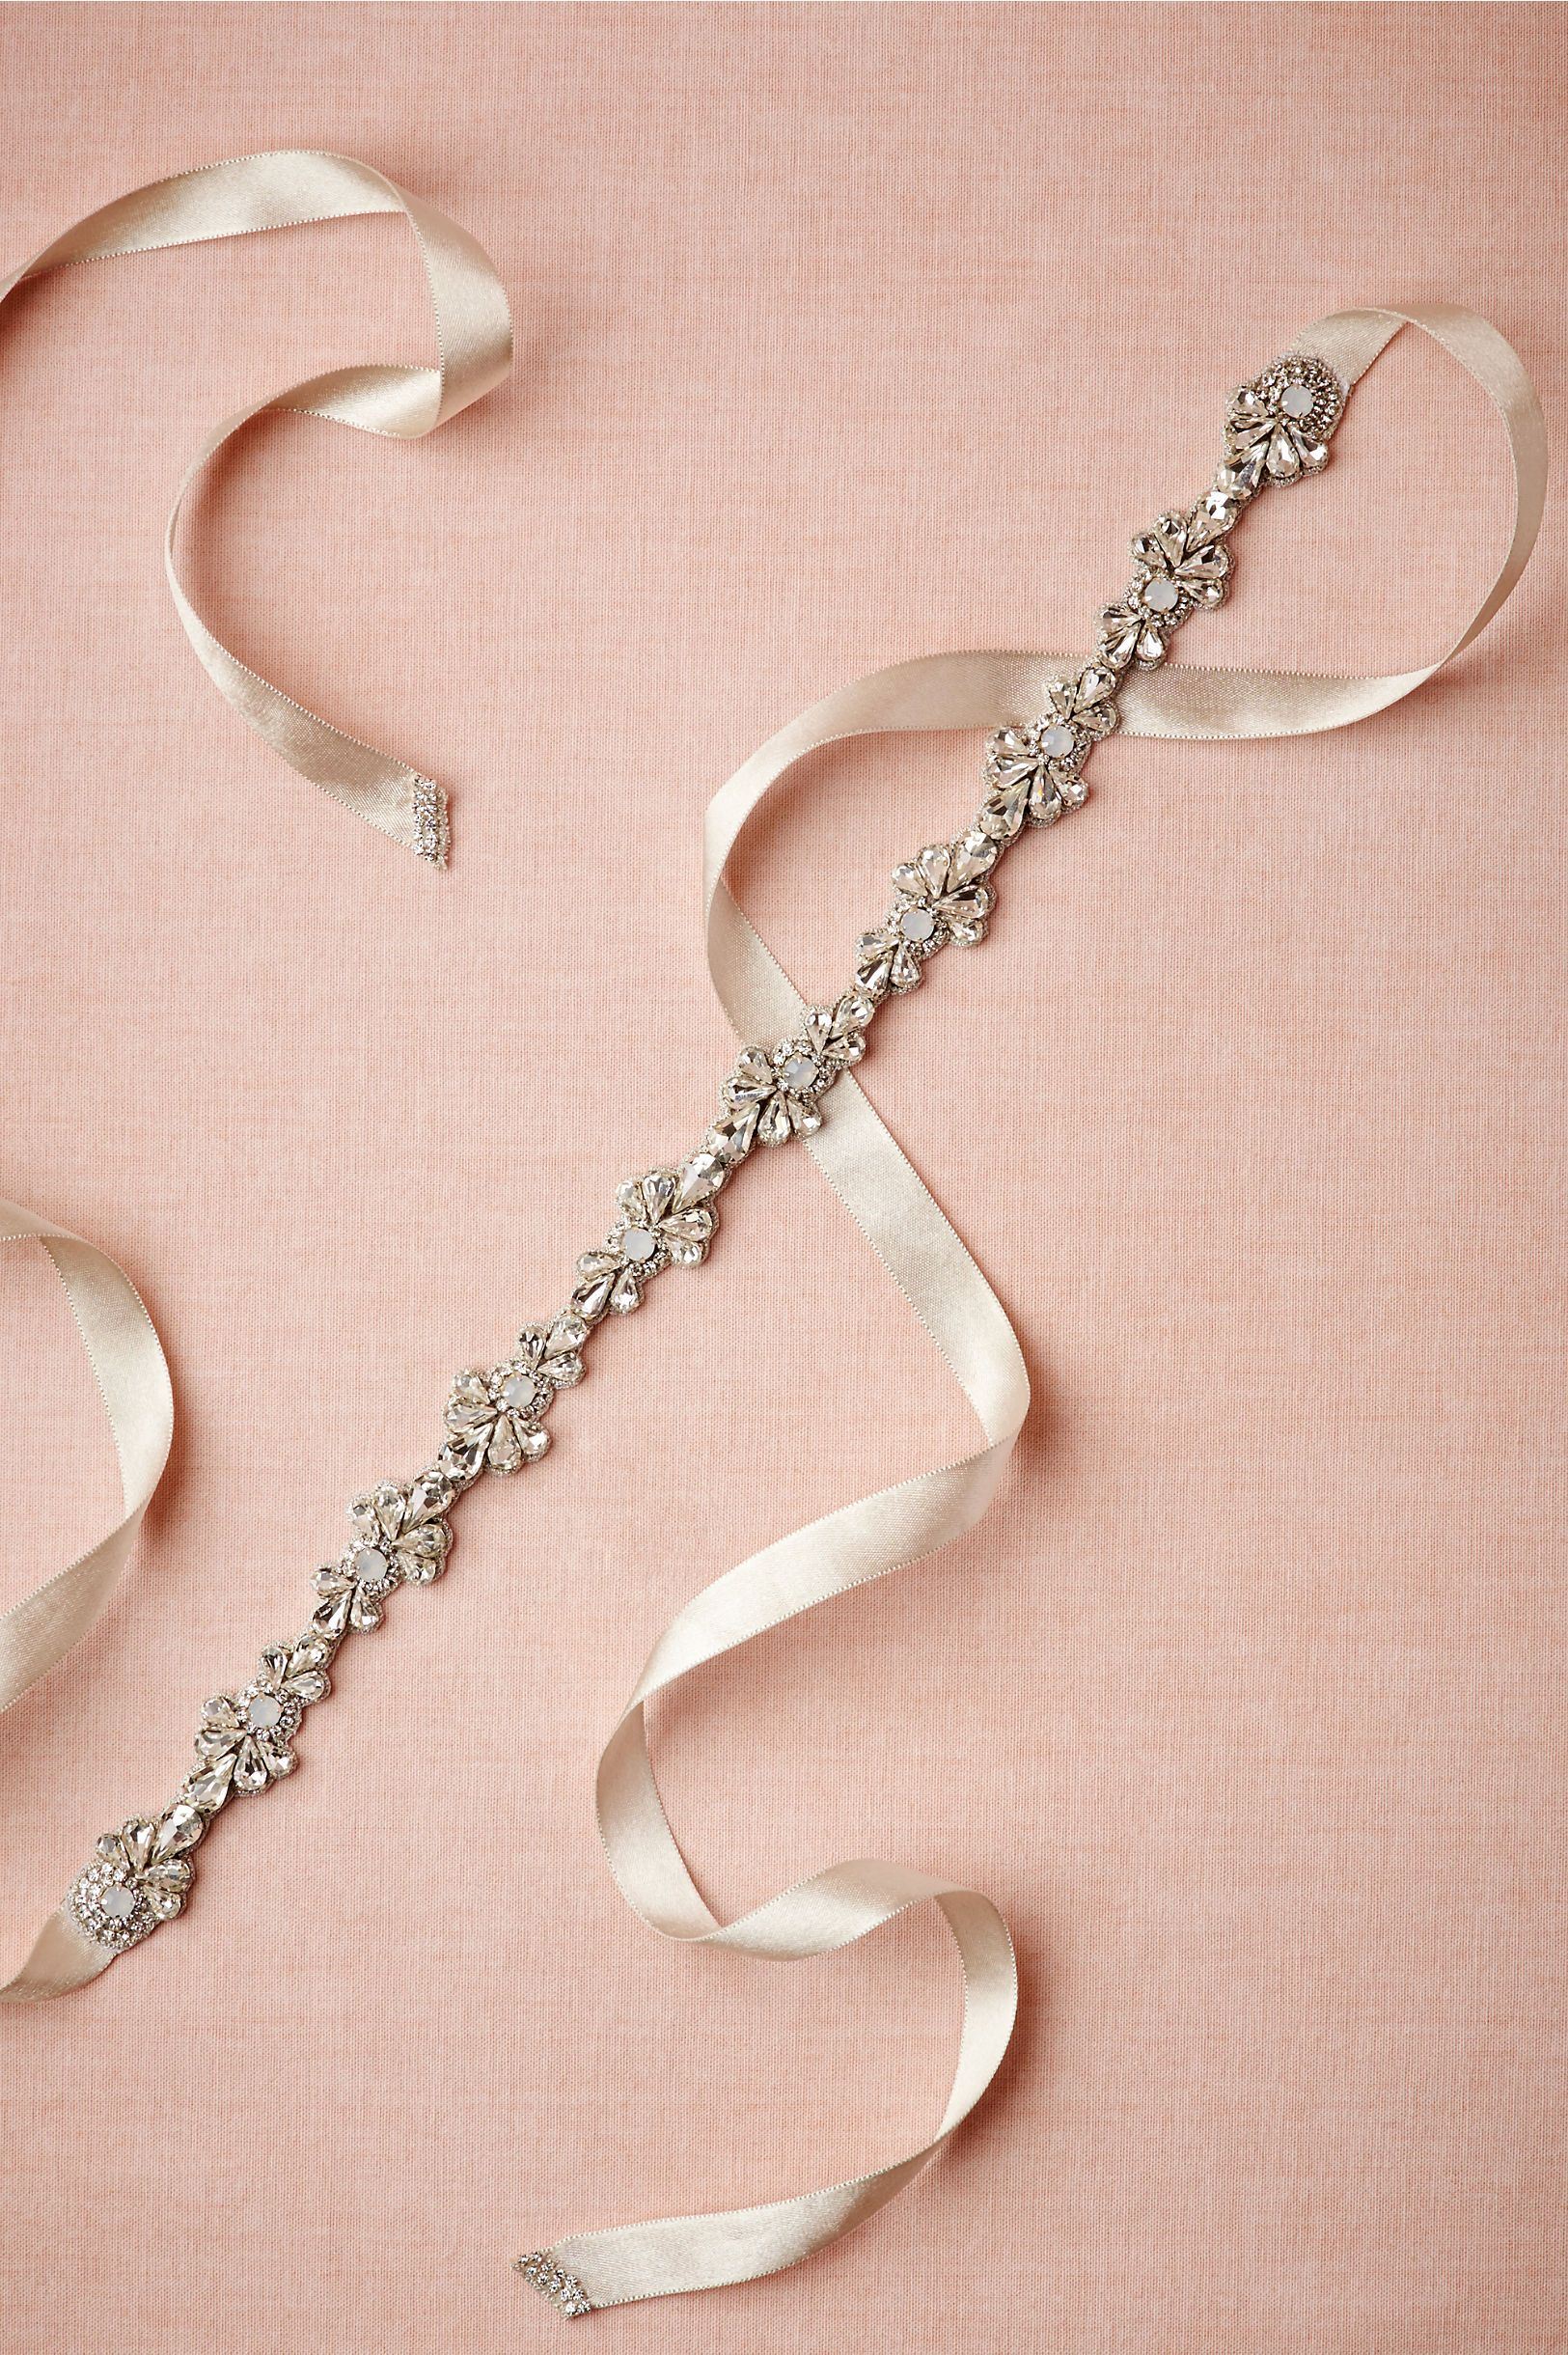 Opaline & Pearl Sash in Sale Accessories at BHLDN